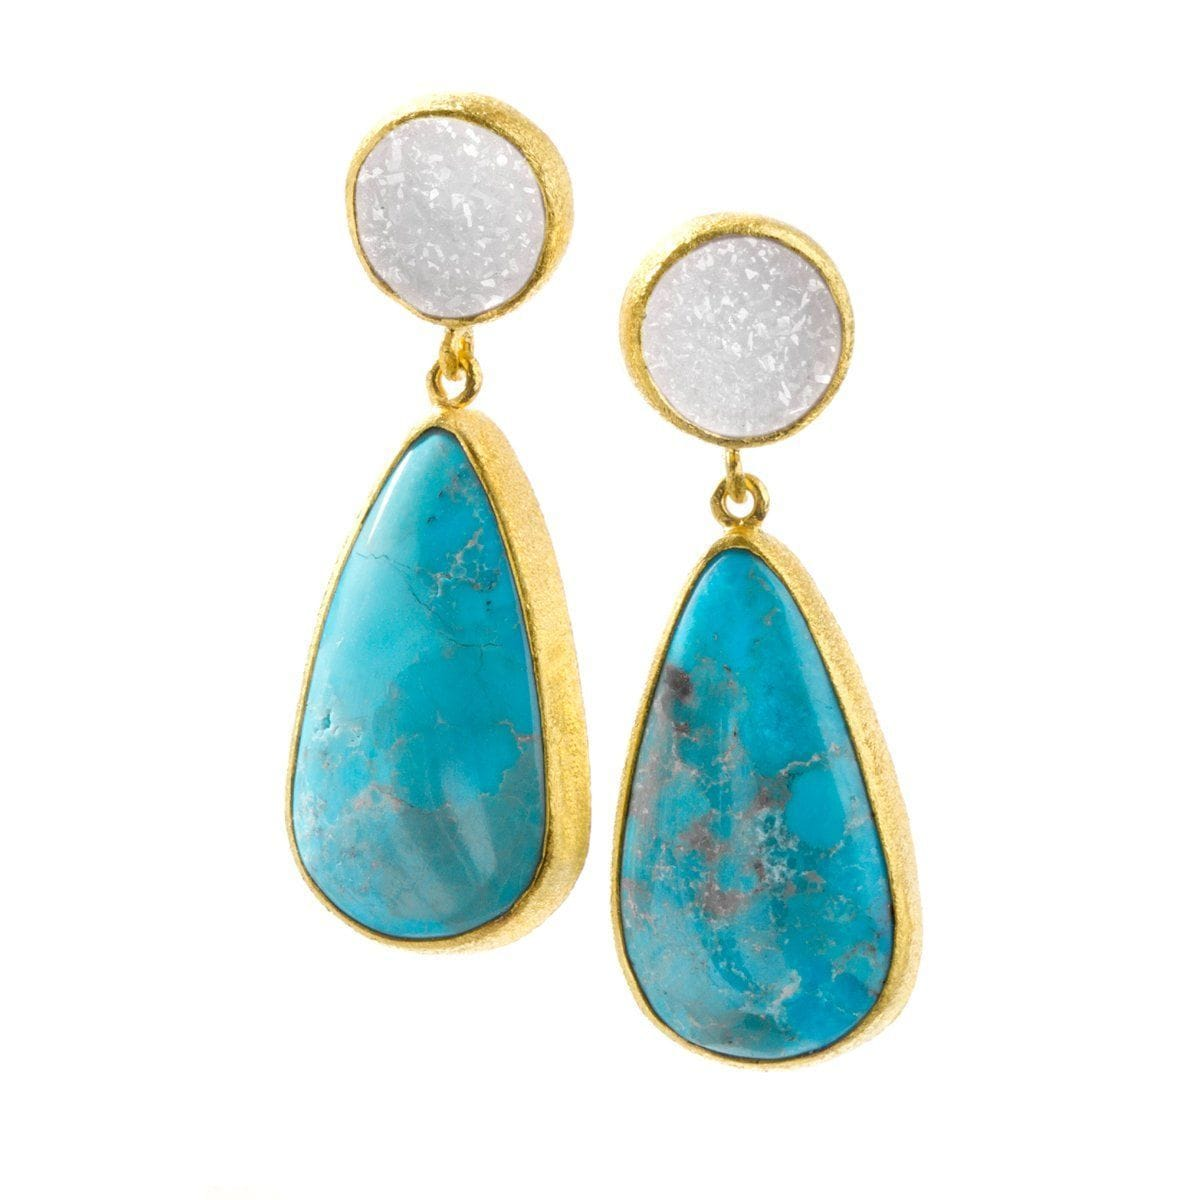 Valerian 22k Gold Plated & Turquoise Earrings - G4005E-TRQ-Nina Nguyen-Renee Taylor Gallery